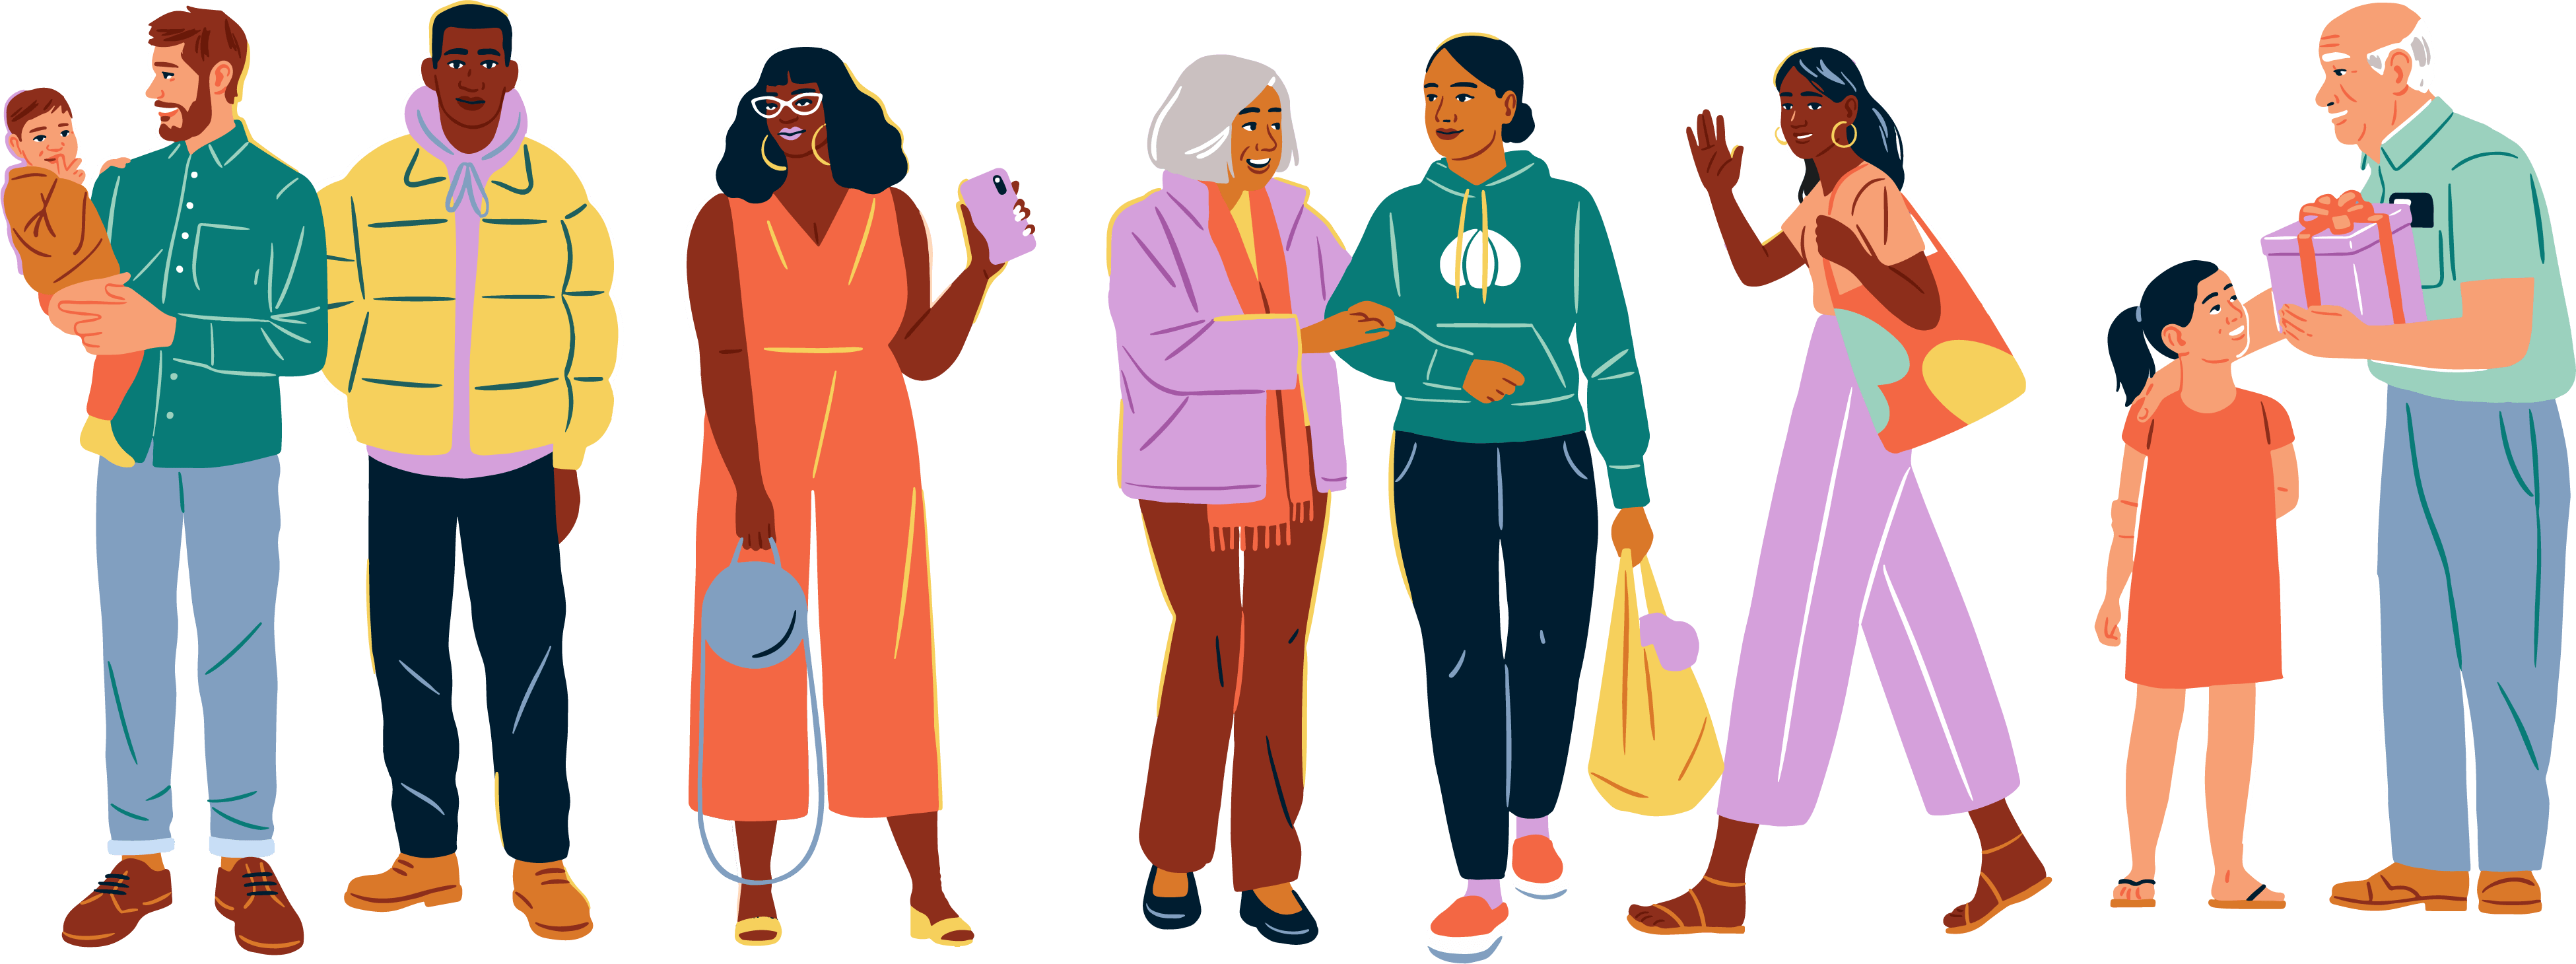 Illustration of a variety of people